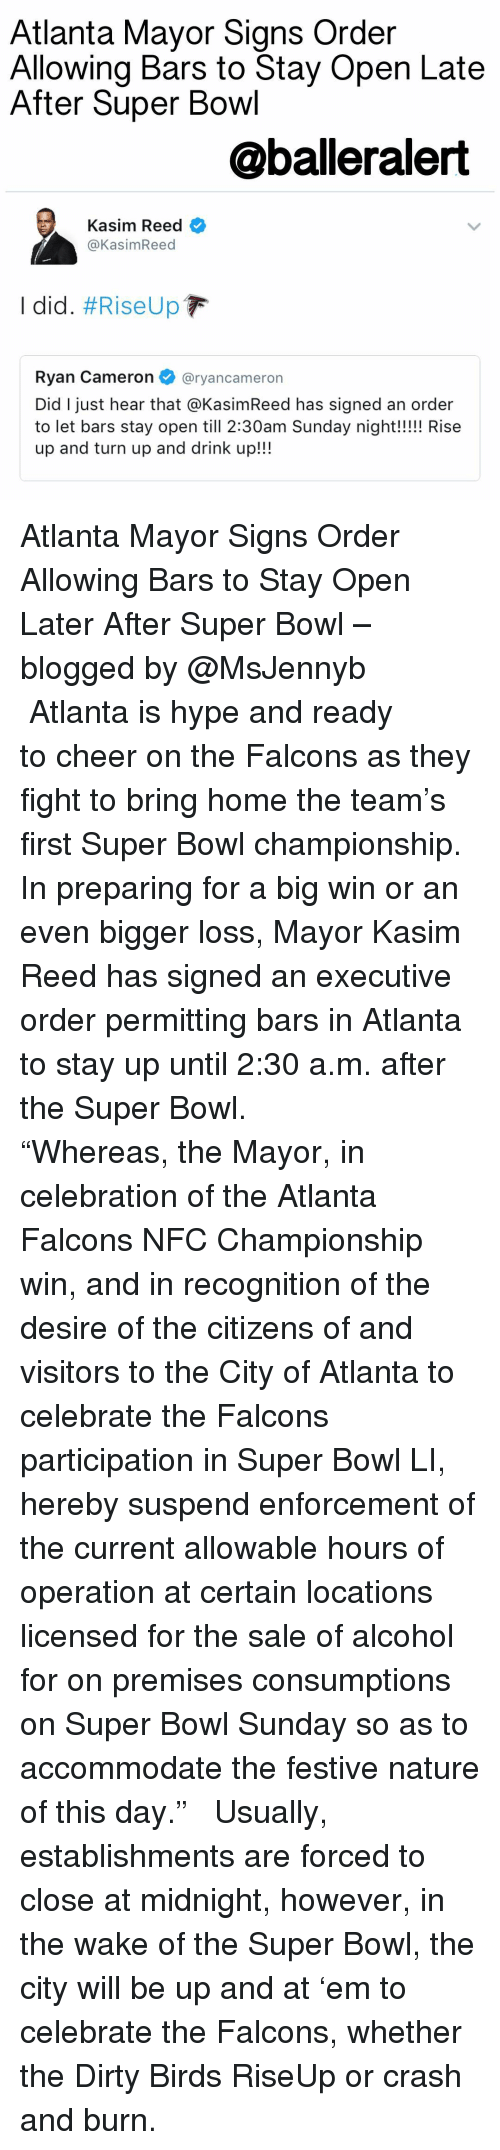 """Super Bowl Li: Atlanta Mayor Signs Order  Allowing Bars to Stay Open Late  After Super Bowl  @balleralert  Kasim Reed  Kasim Reed  I did. #Rise Up  F  Ryan Cameron  @ryan cameron  Did I just hear that aKasimReed has signed an order  to let bars stay open till 2:30am Sunday night!!!!! Rise  up and turn up and drink up!!! Atlanta Mayor Signs Order Allowing Bars to Stay Open Later After Super Bowl – blogged by @MsJennyb ⠀⠀⠀⠀⠀⠀⠀ ⠀⠀⠀⠀⠀⠀⠀ Atlanta is hype and ready to cheer on the Falcons as they fight to bring home the team's first Super Bowl championship. In preparing for a big win or an even bigger loss, Mayor Kasim Reed has signed an executive order permitting bars in Atlanta to stay up until 2:30 a.m. after the Super Bowl. ⠀⠀⠀⠀⠀⠀⠀ ⠀⠀⠀⠀⠀⠀⠀ """"Whereas, the Mayor, in celebration of the Atlanta Falcons NFC Championship win, and in recognition of the desire of the citizens of and visitors to the City of Atlanta to celebrate the Falcons participation in Super Bowl LI, hereby suspend enforcement of the current allowable hours of operation at certain locations licensed for the sale of alcohol for on premises consumptions on Super Bowl Sunday so as to accommodate the festive nature of this day."""" ⠀⠀⠀⠀⠀⠀⠀ ⠀⠀⠀⠀⠀⠀⠀ Usually, establishments are forced to close at midnight, however, in the wake of the Super Bowl, the city will be up and at 'em to celebrate the Falcons, whether the Dirty Birds RiseUp or crash and burn."""